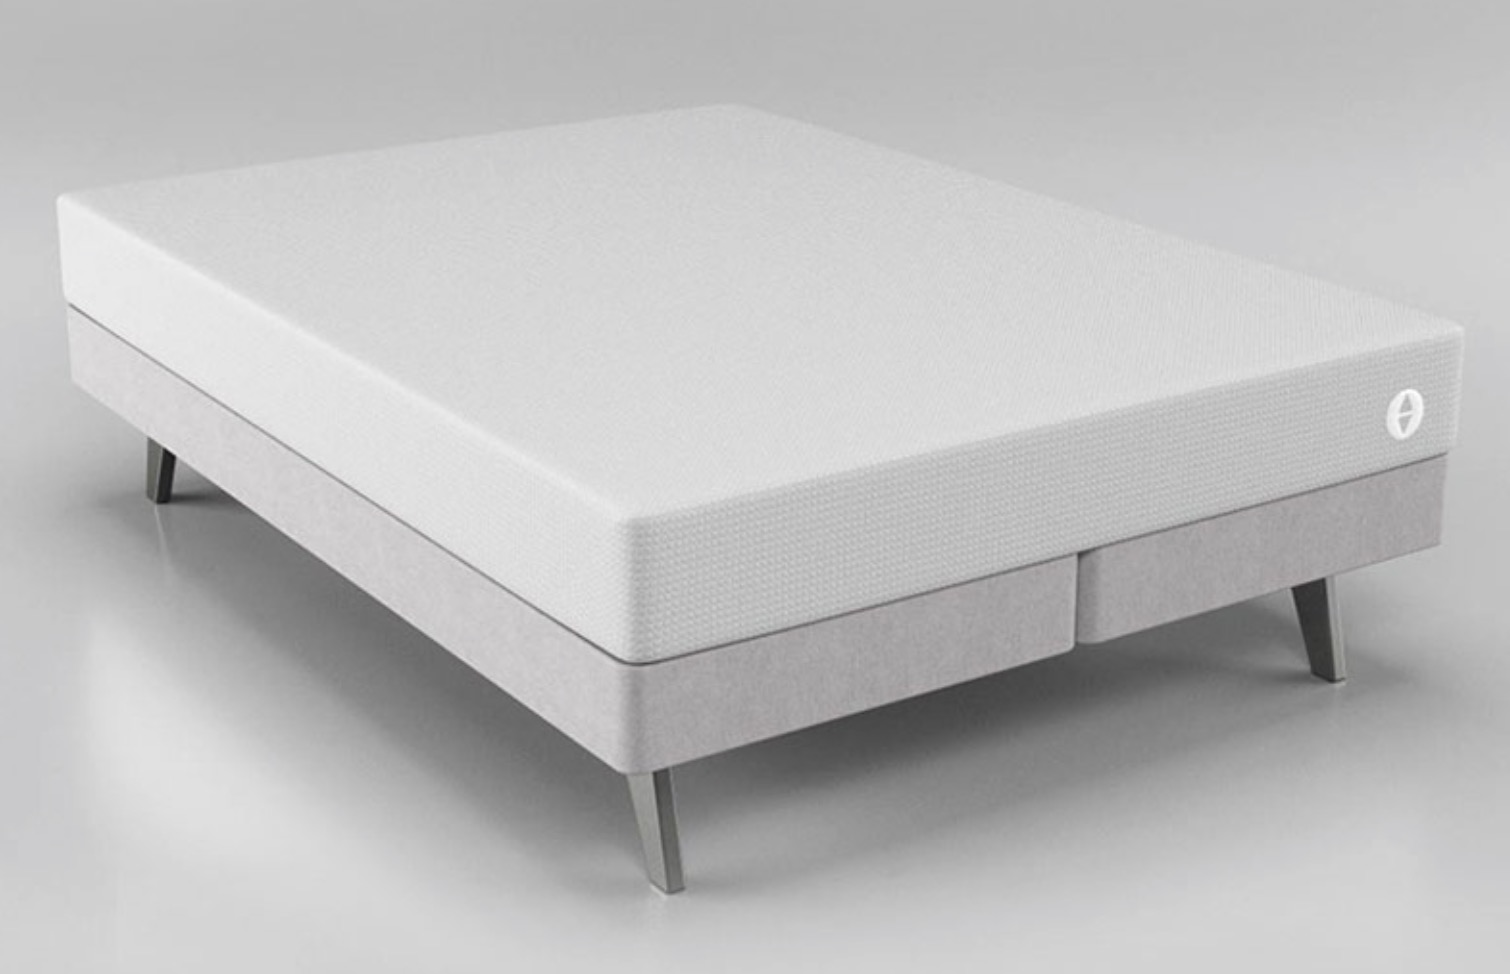 Sleep Number's Latest Mattress Suggests Changes for Better Sleep